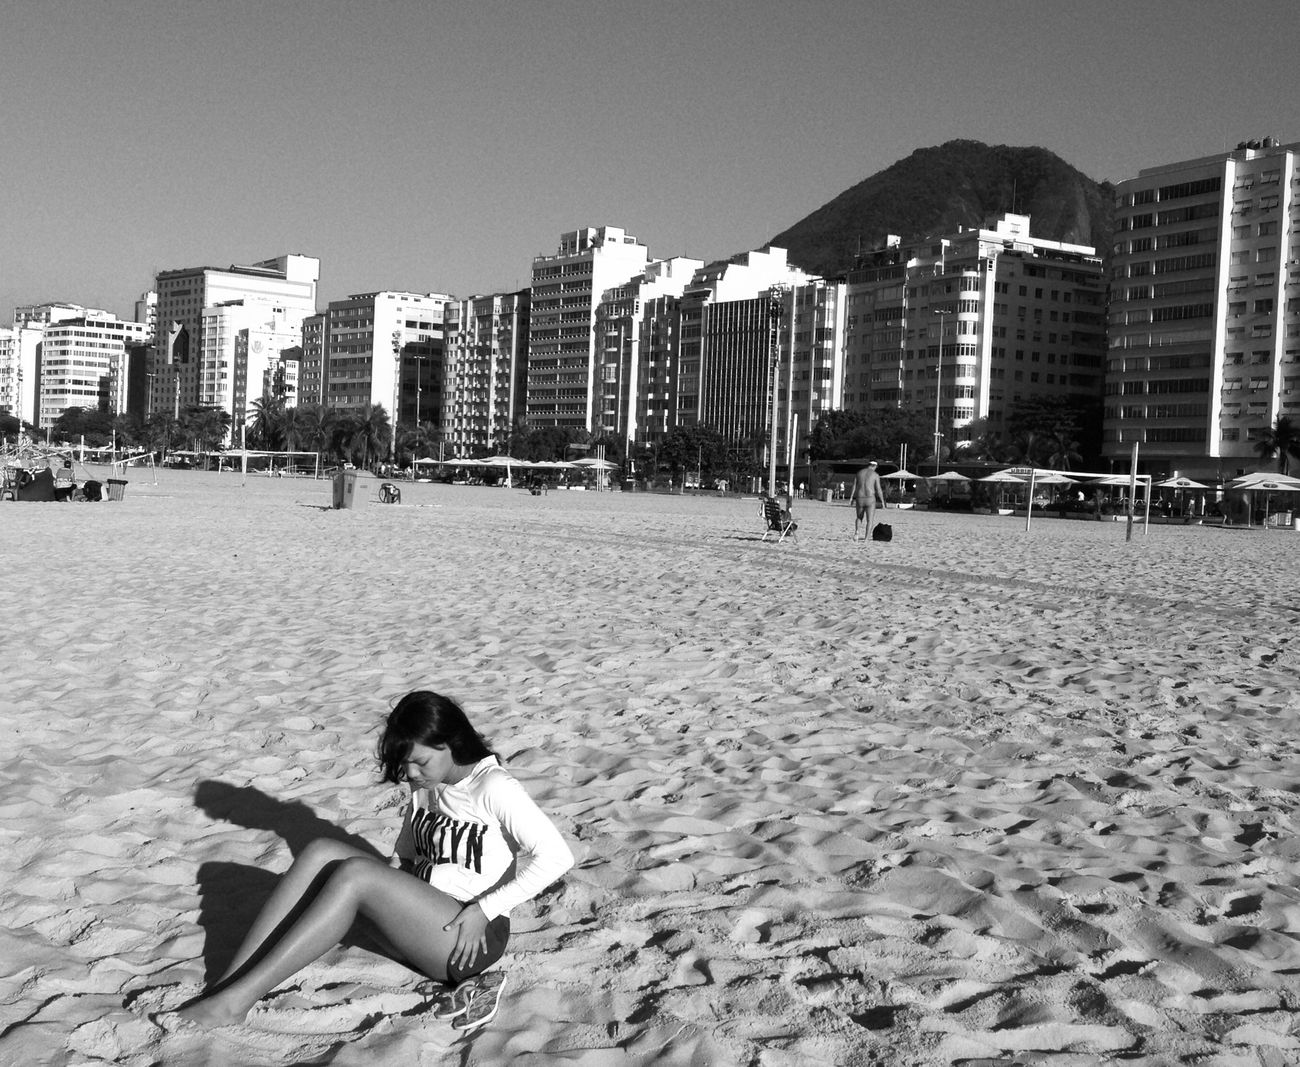 Showcase: January Enjoying Life Iphone5C Riodejaneiro